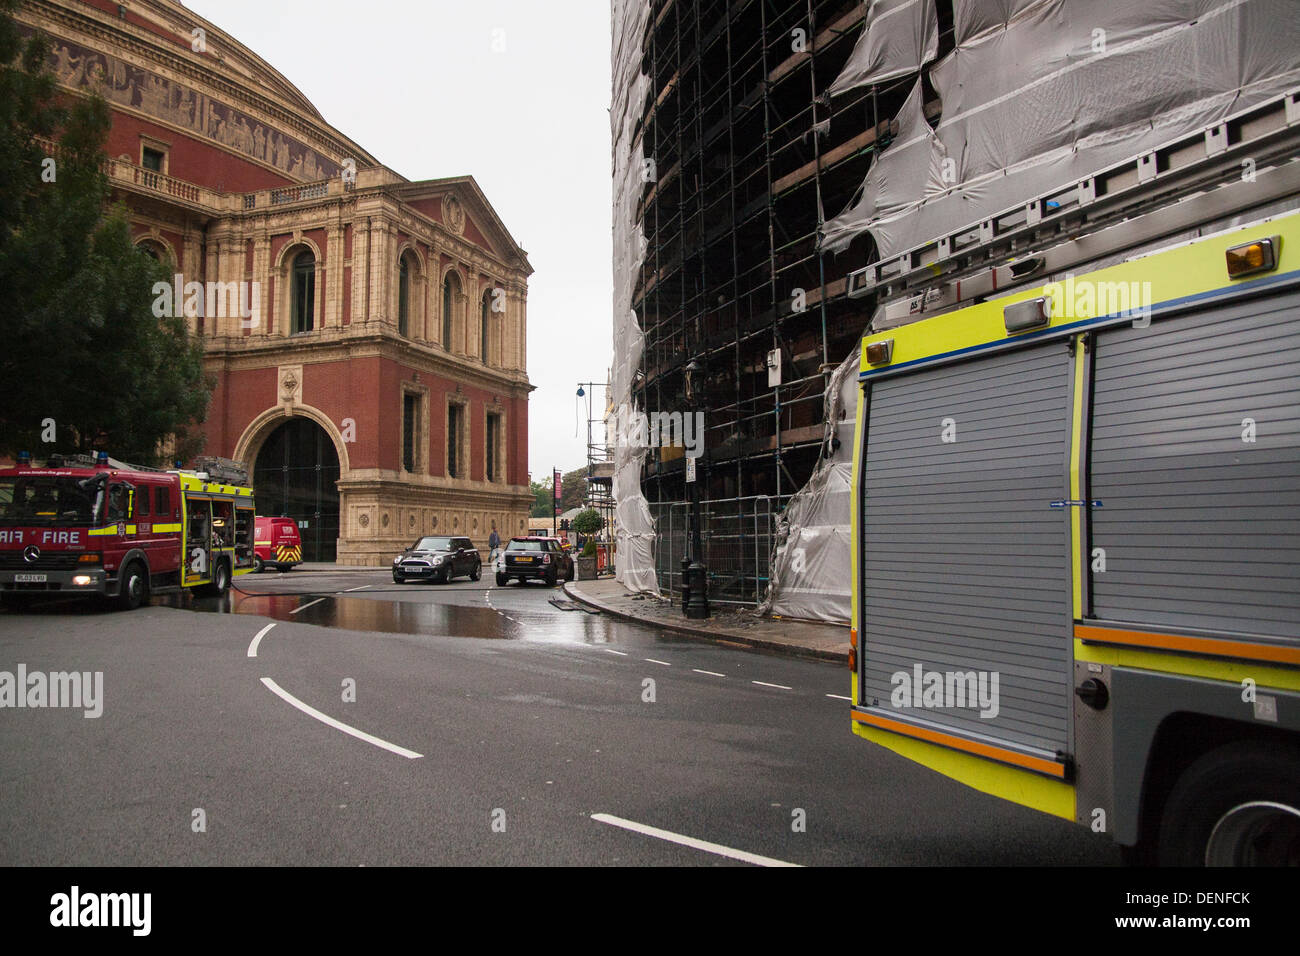 London, UK. 22nd Sep, 2013.  The burnt scaffolding surrounding Albert Mansions after a fire in a ground floor flat, across the road from The Royal Albert Hall. Credit:  Paul Davey/Alamy Live News - Stock Image